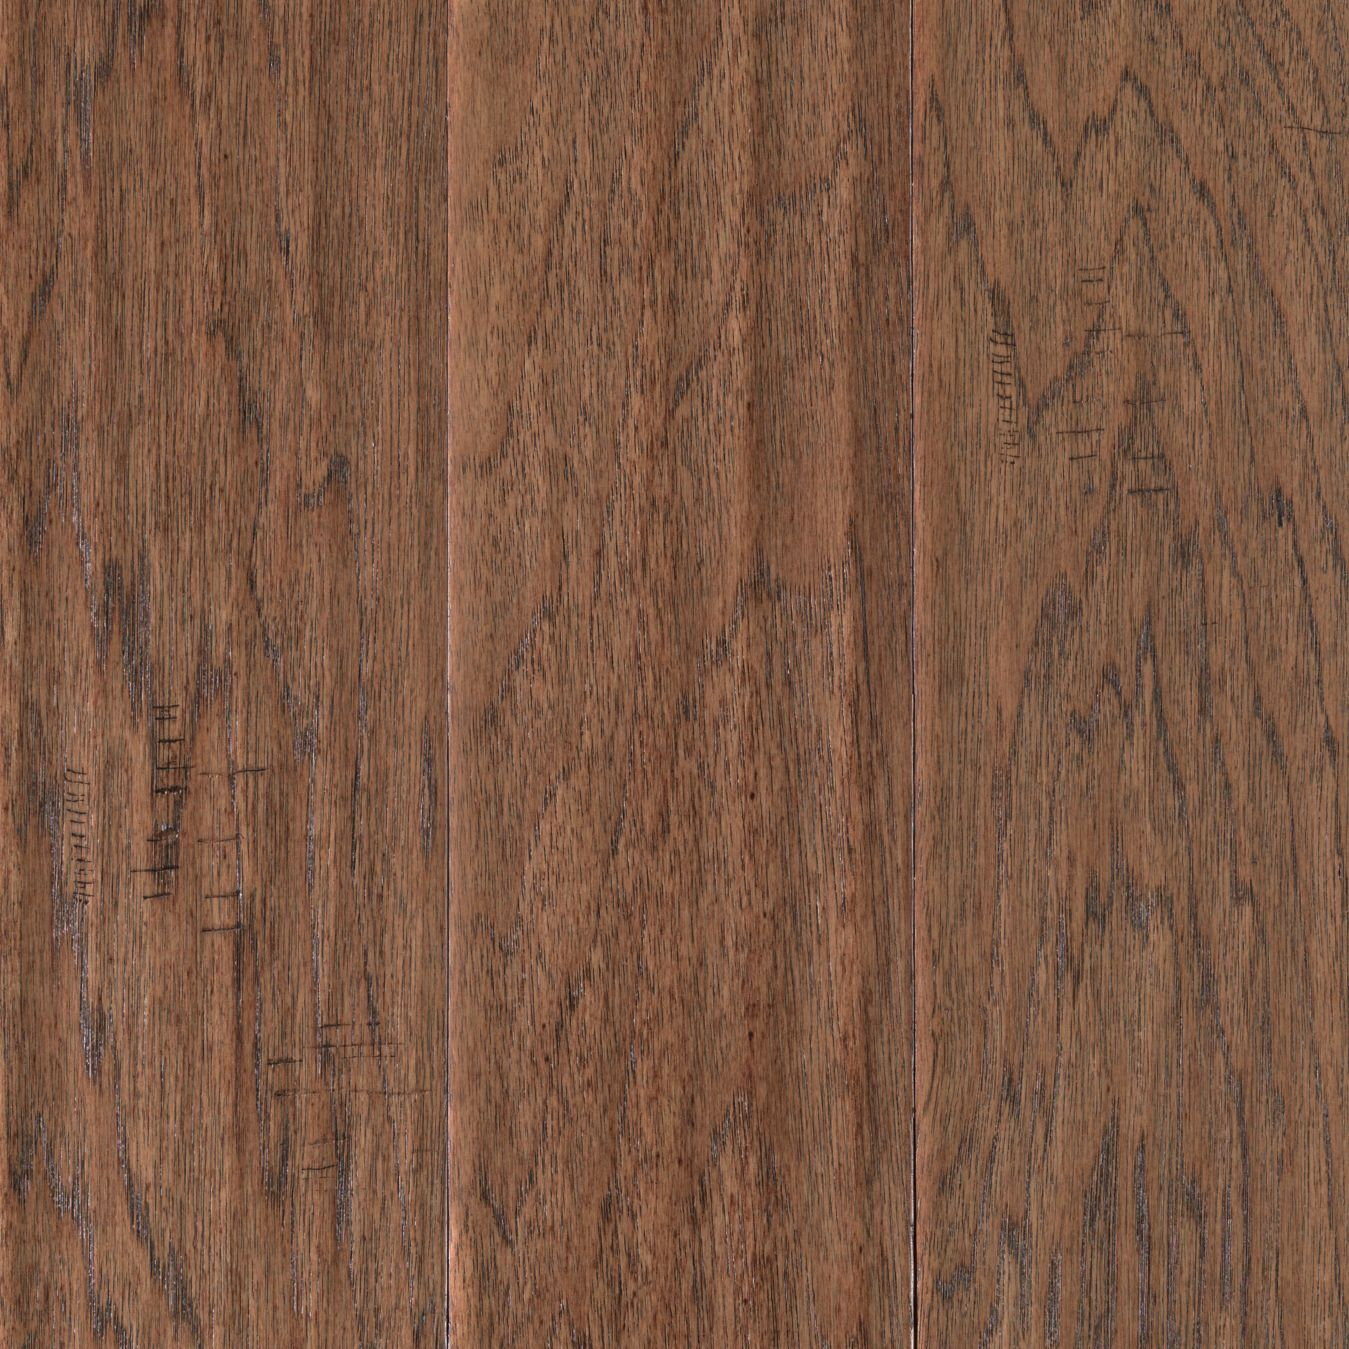 Simas Floor Design Company Hardwood Flooring Price